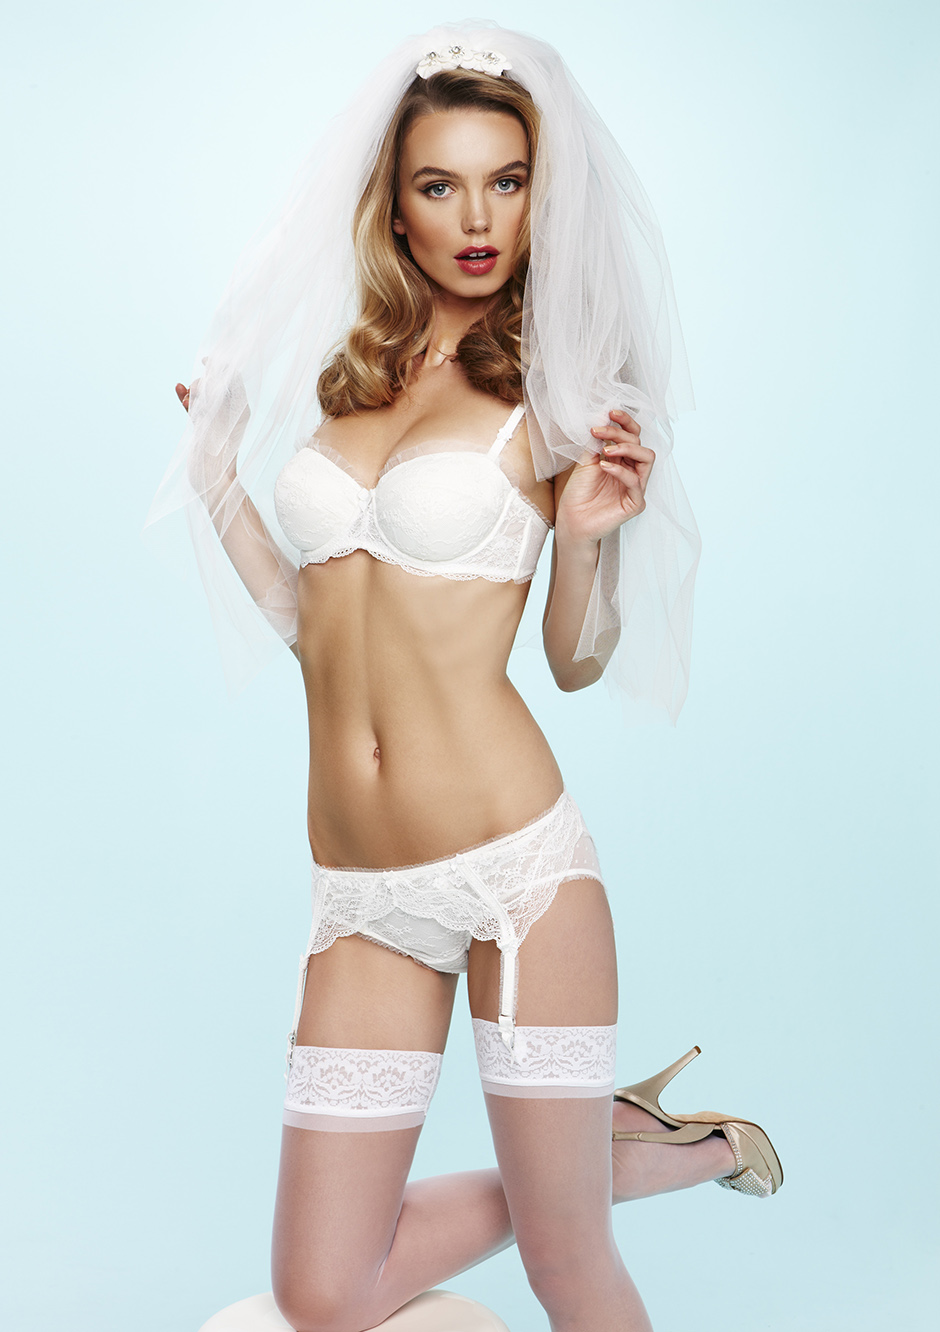 http://lingerietribute.files.wordpress.com/2012/11/collette-dinnigan-bridal-lingerie.jpg